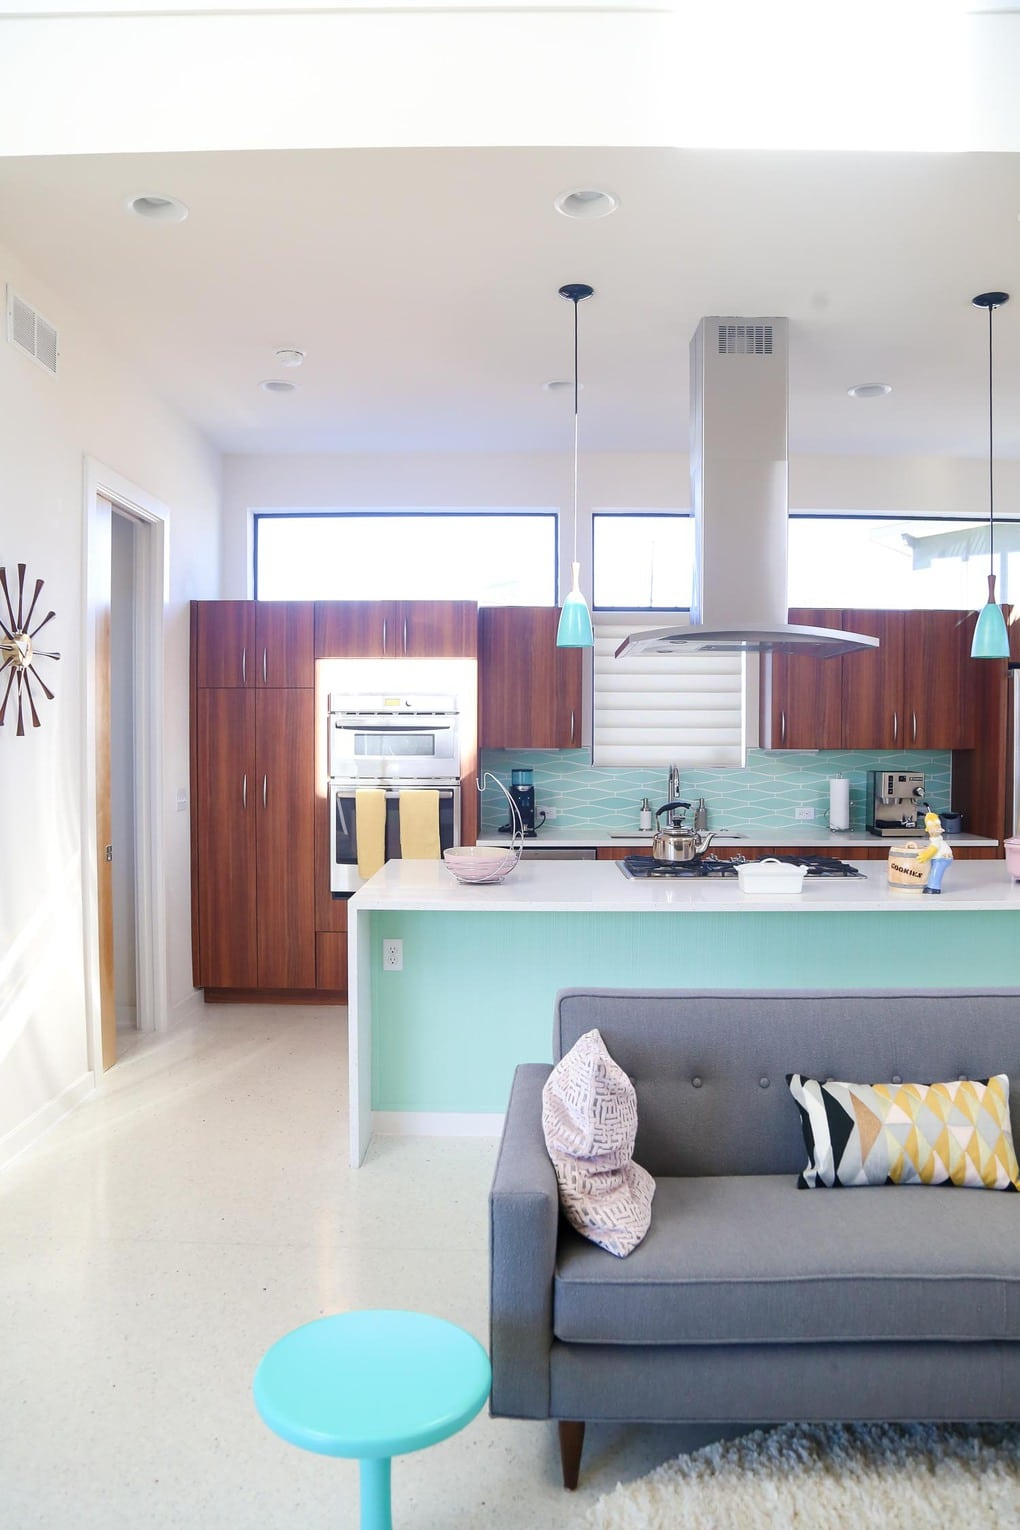 A mid-century modern living room and kitchen designed by Starlight Village in Leander